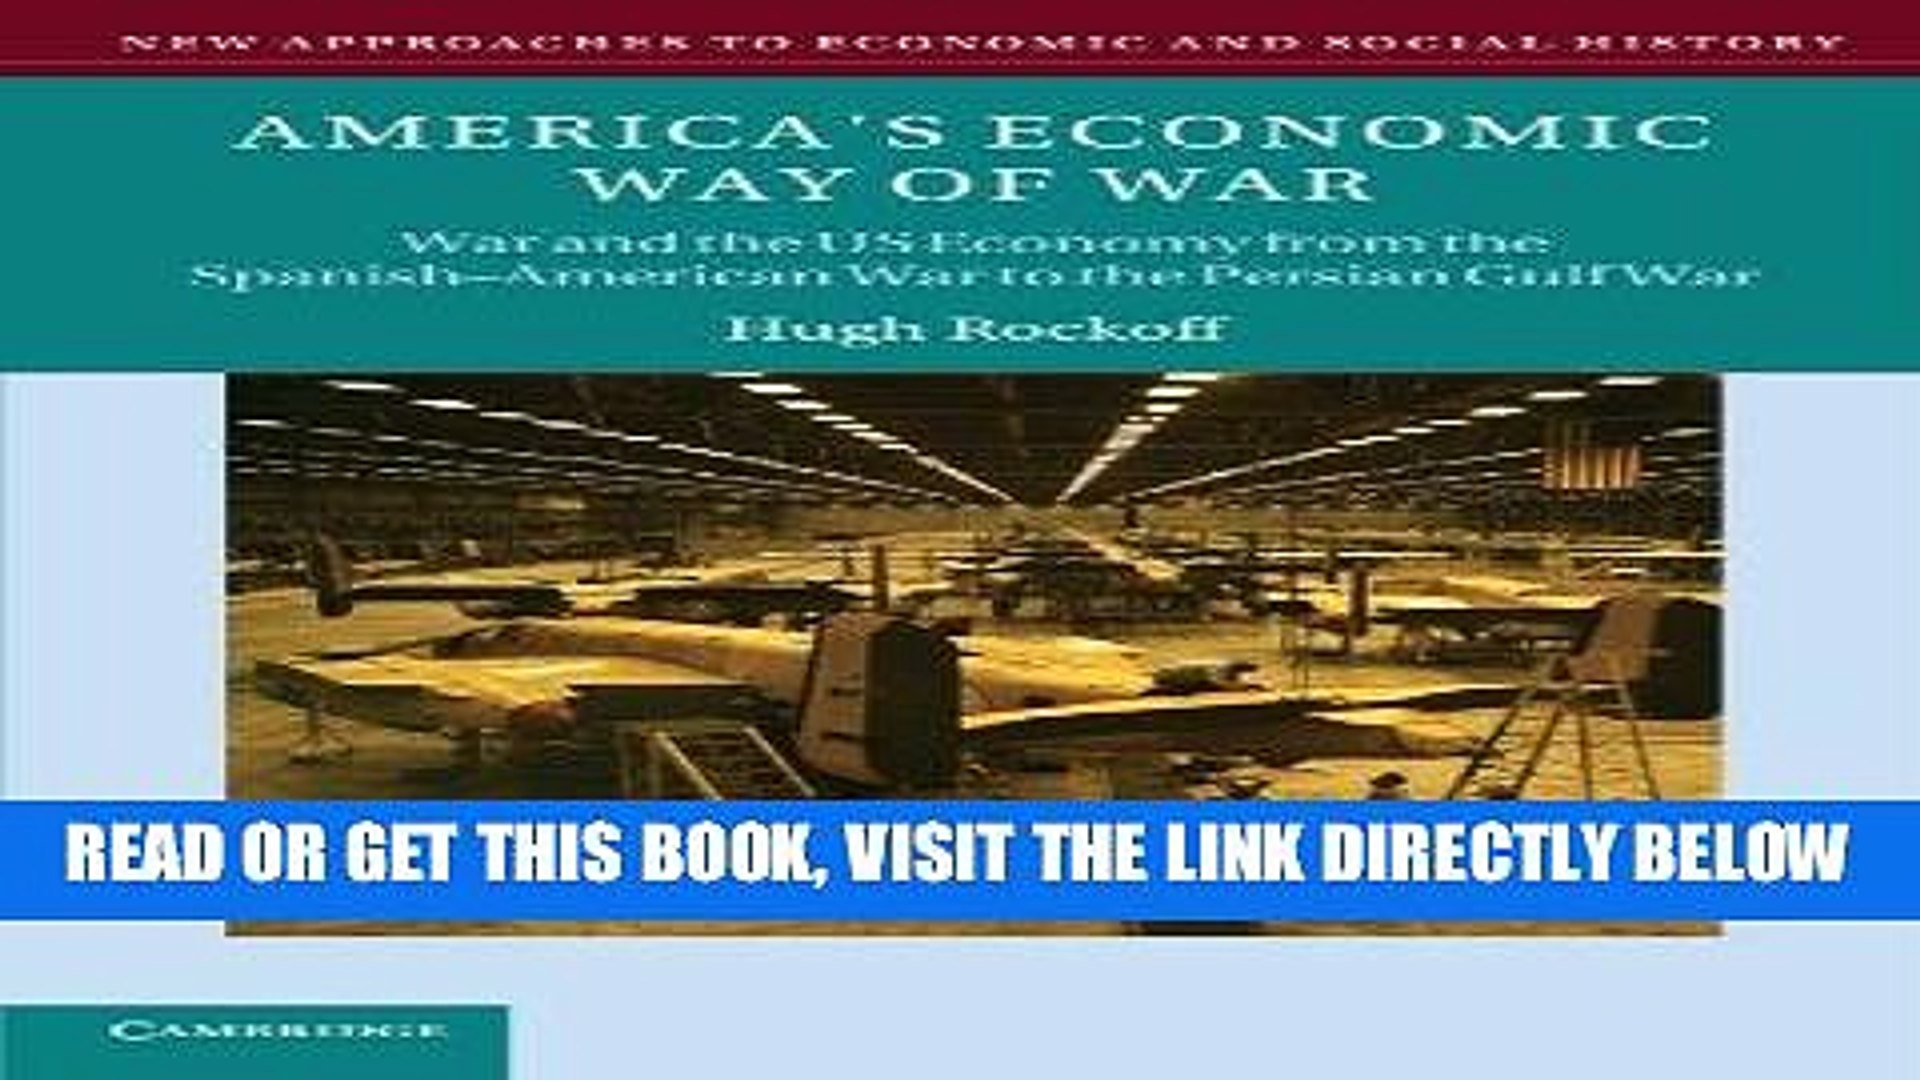 [Free Read] America s Economic Way of War: War and the US Economy from the Spanish-American War to